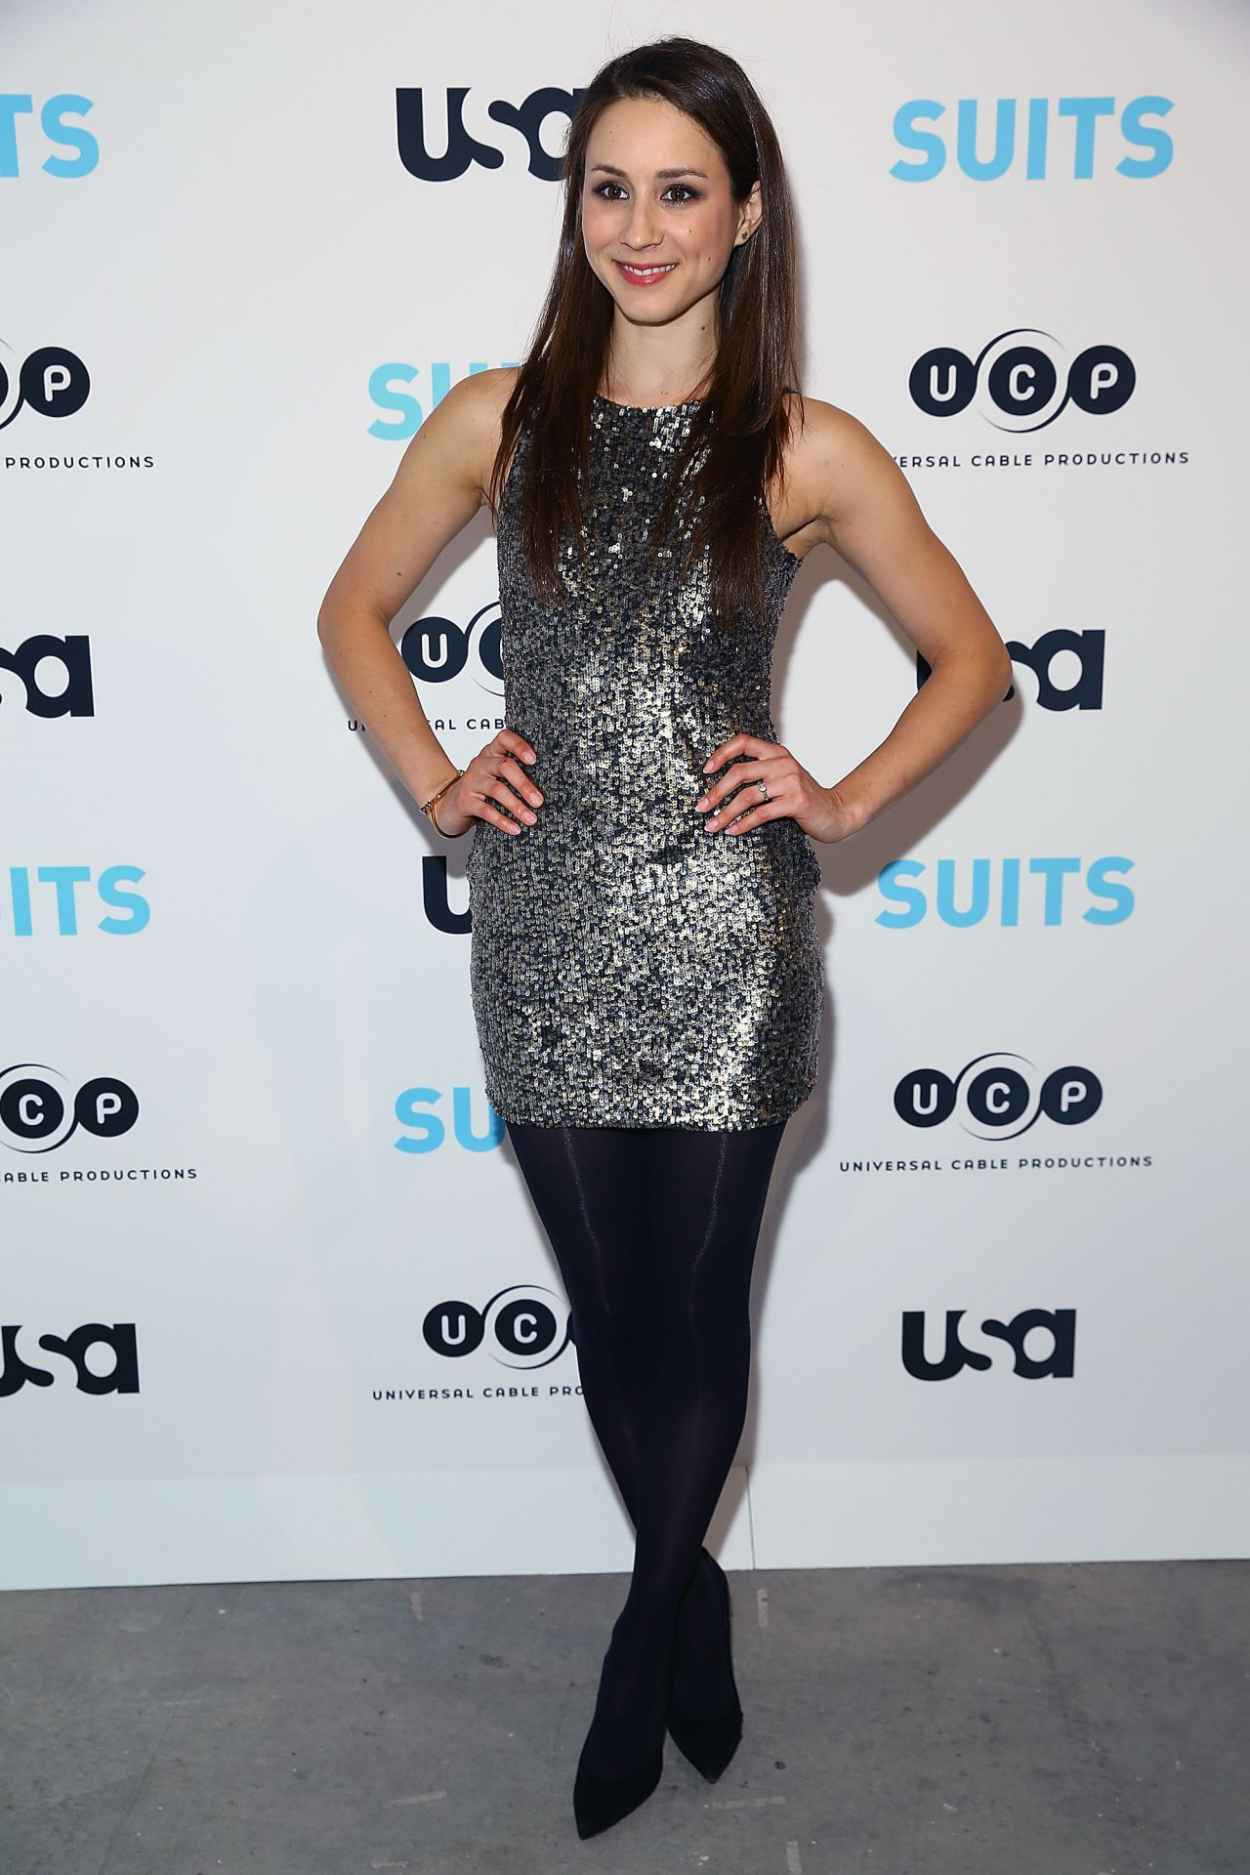 Troian Bellisario - Patrick J. Adams Exhibition Opening of SUITS Gallery in New York City-1